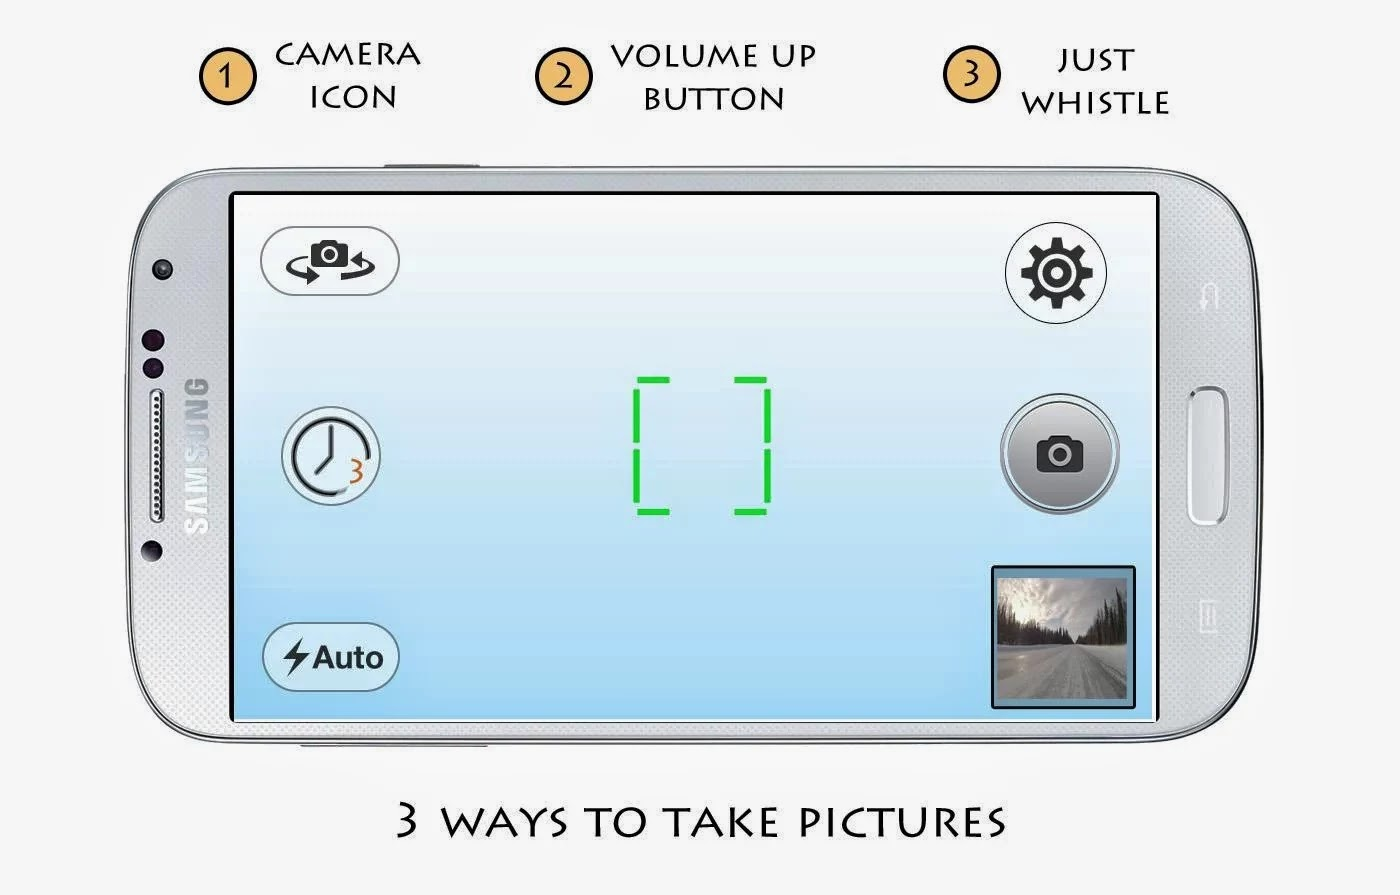 Capture Photos & Selfies by Whistling on Android Mobiles